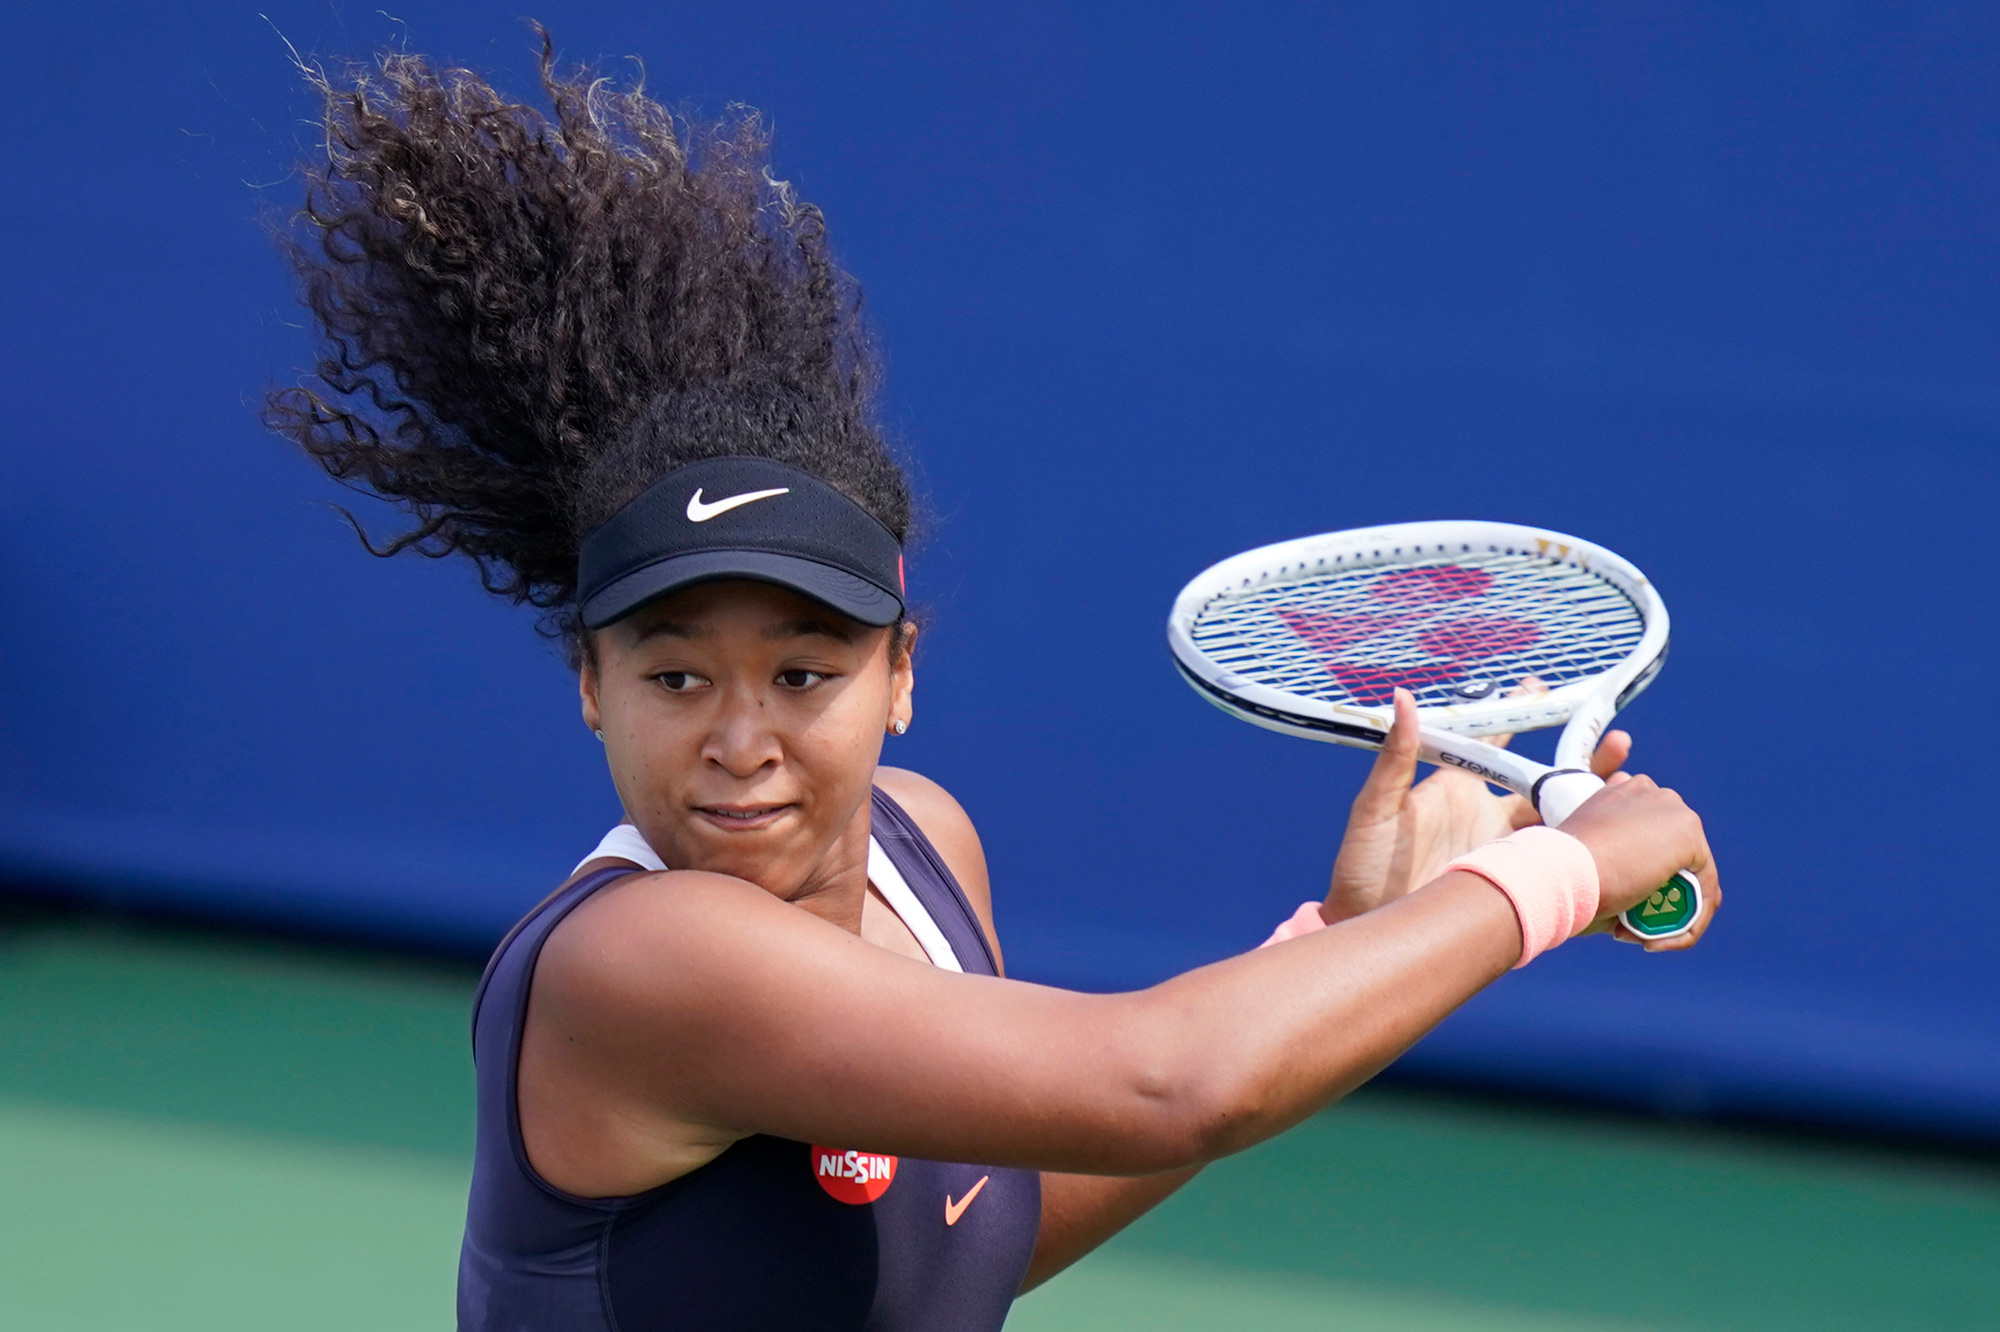 Naomi Osaka looks to return a shot during the quarterfinals at the Western & Southern Open tennis tournament on August 26 in New York.